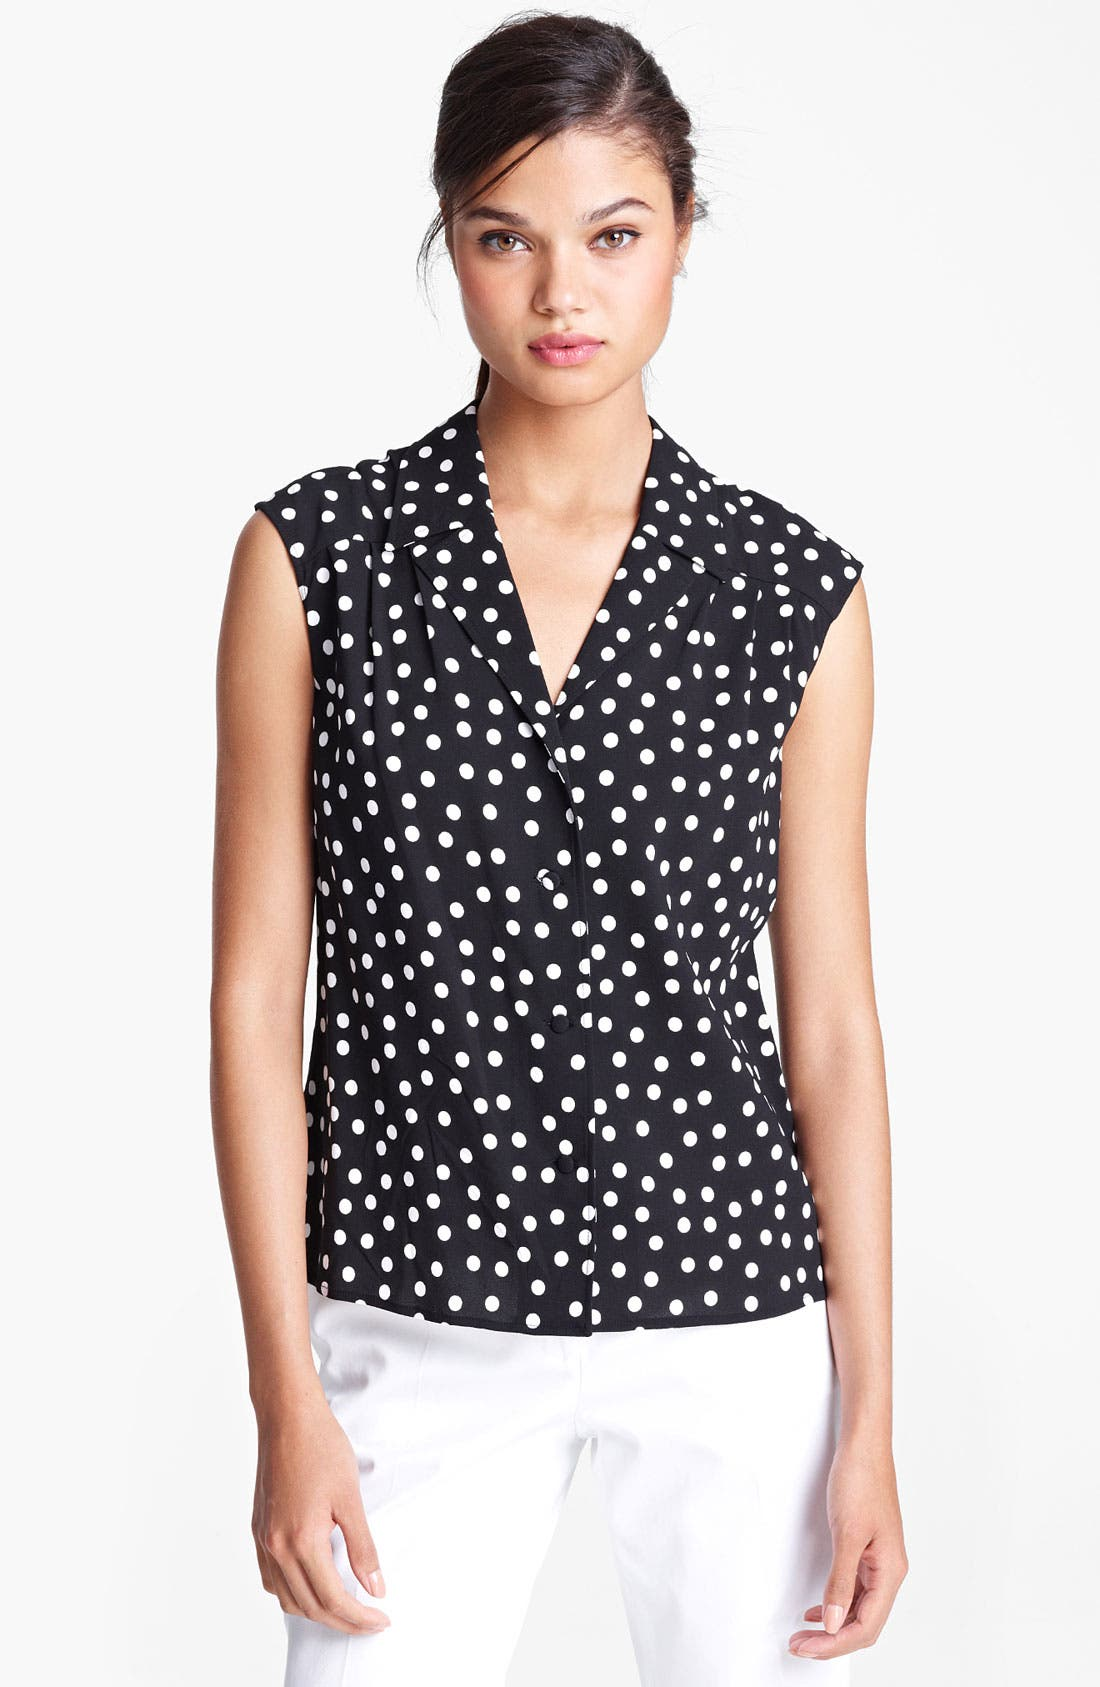 Main Image - Dolce&Gabbana Polka Dot Stretch Cady Blouse